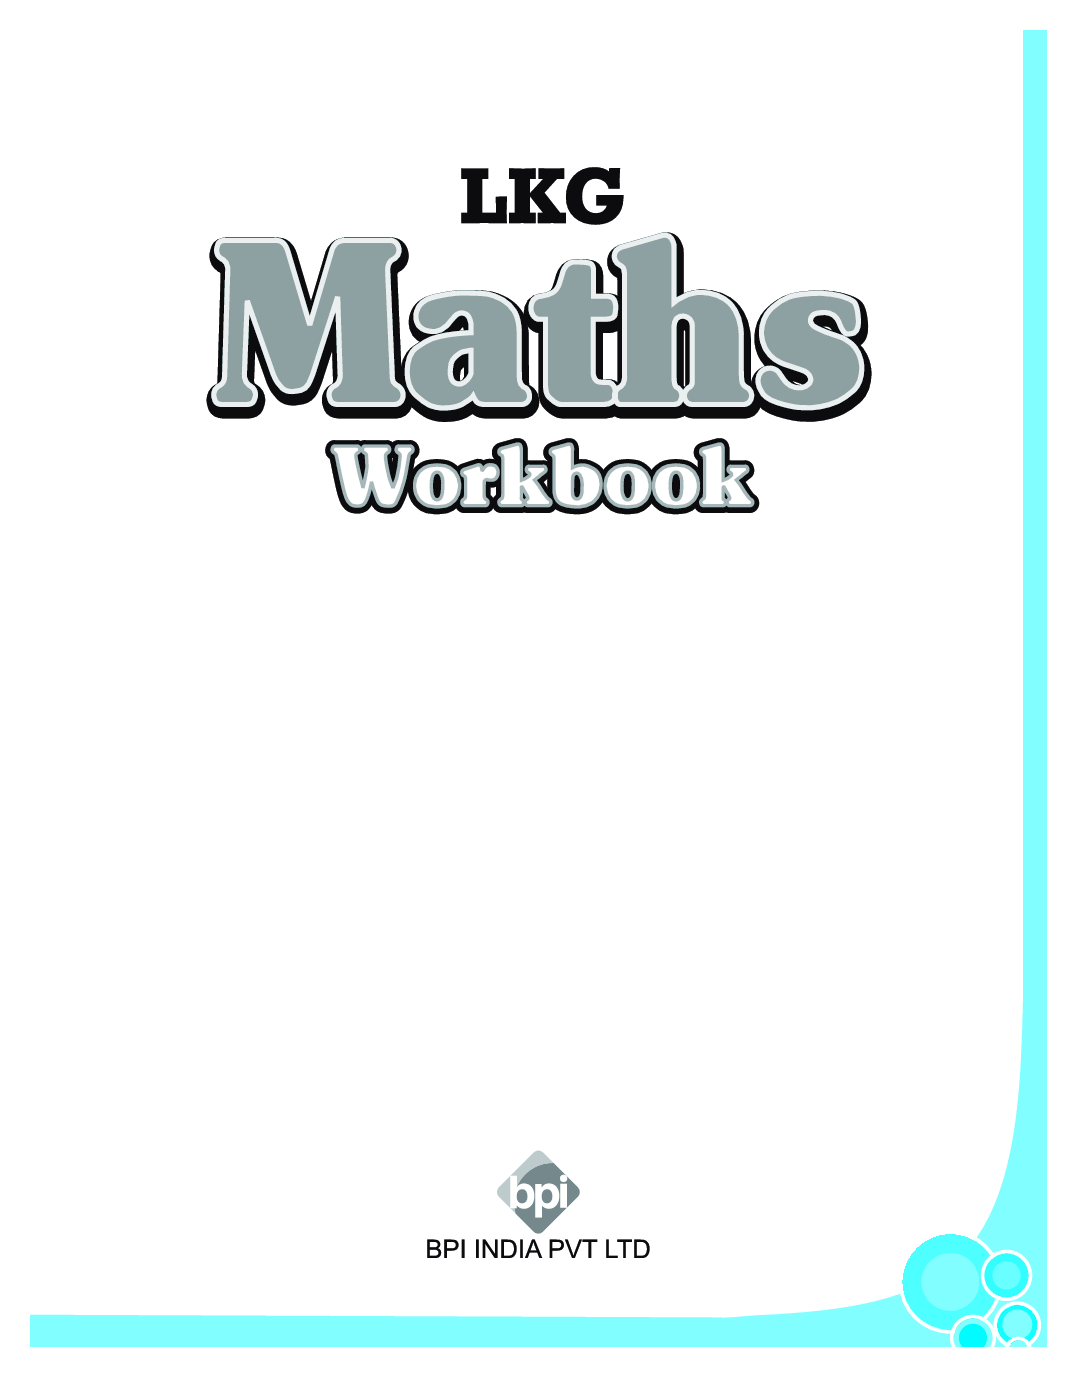 Download Lkg Maths Workbook By Bpi Online